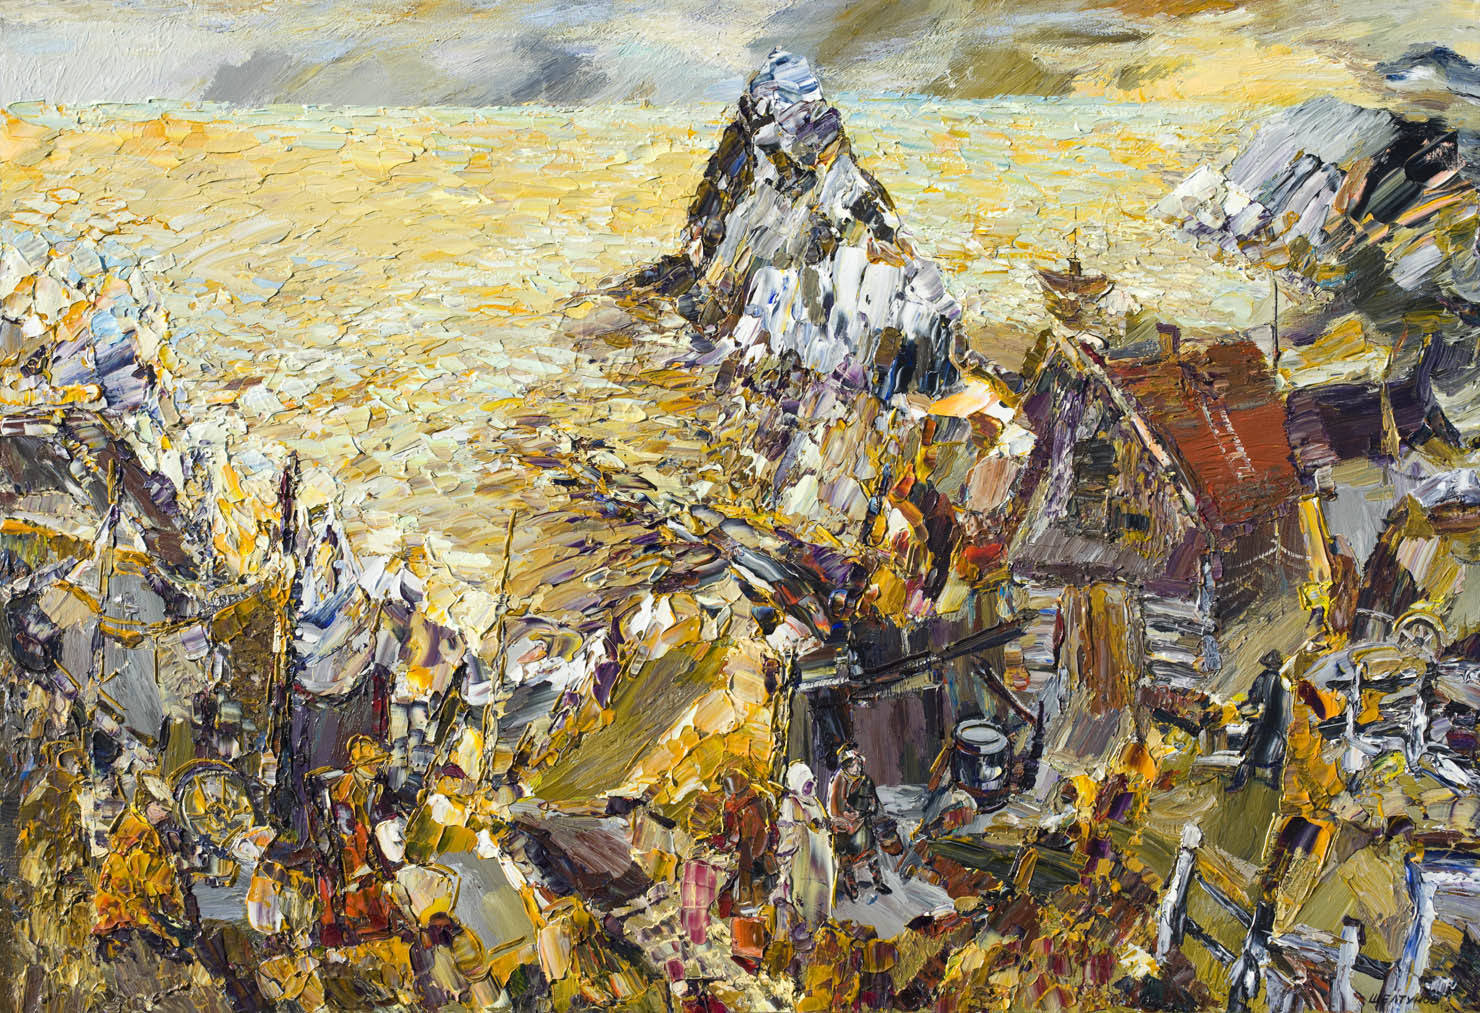 Alexander Sheltunov. On Olkhon 在奥利洪岛 2006 Oil on canvas 油画底布 89 × 130